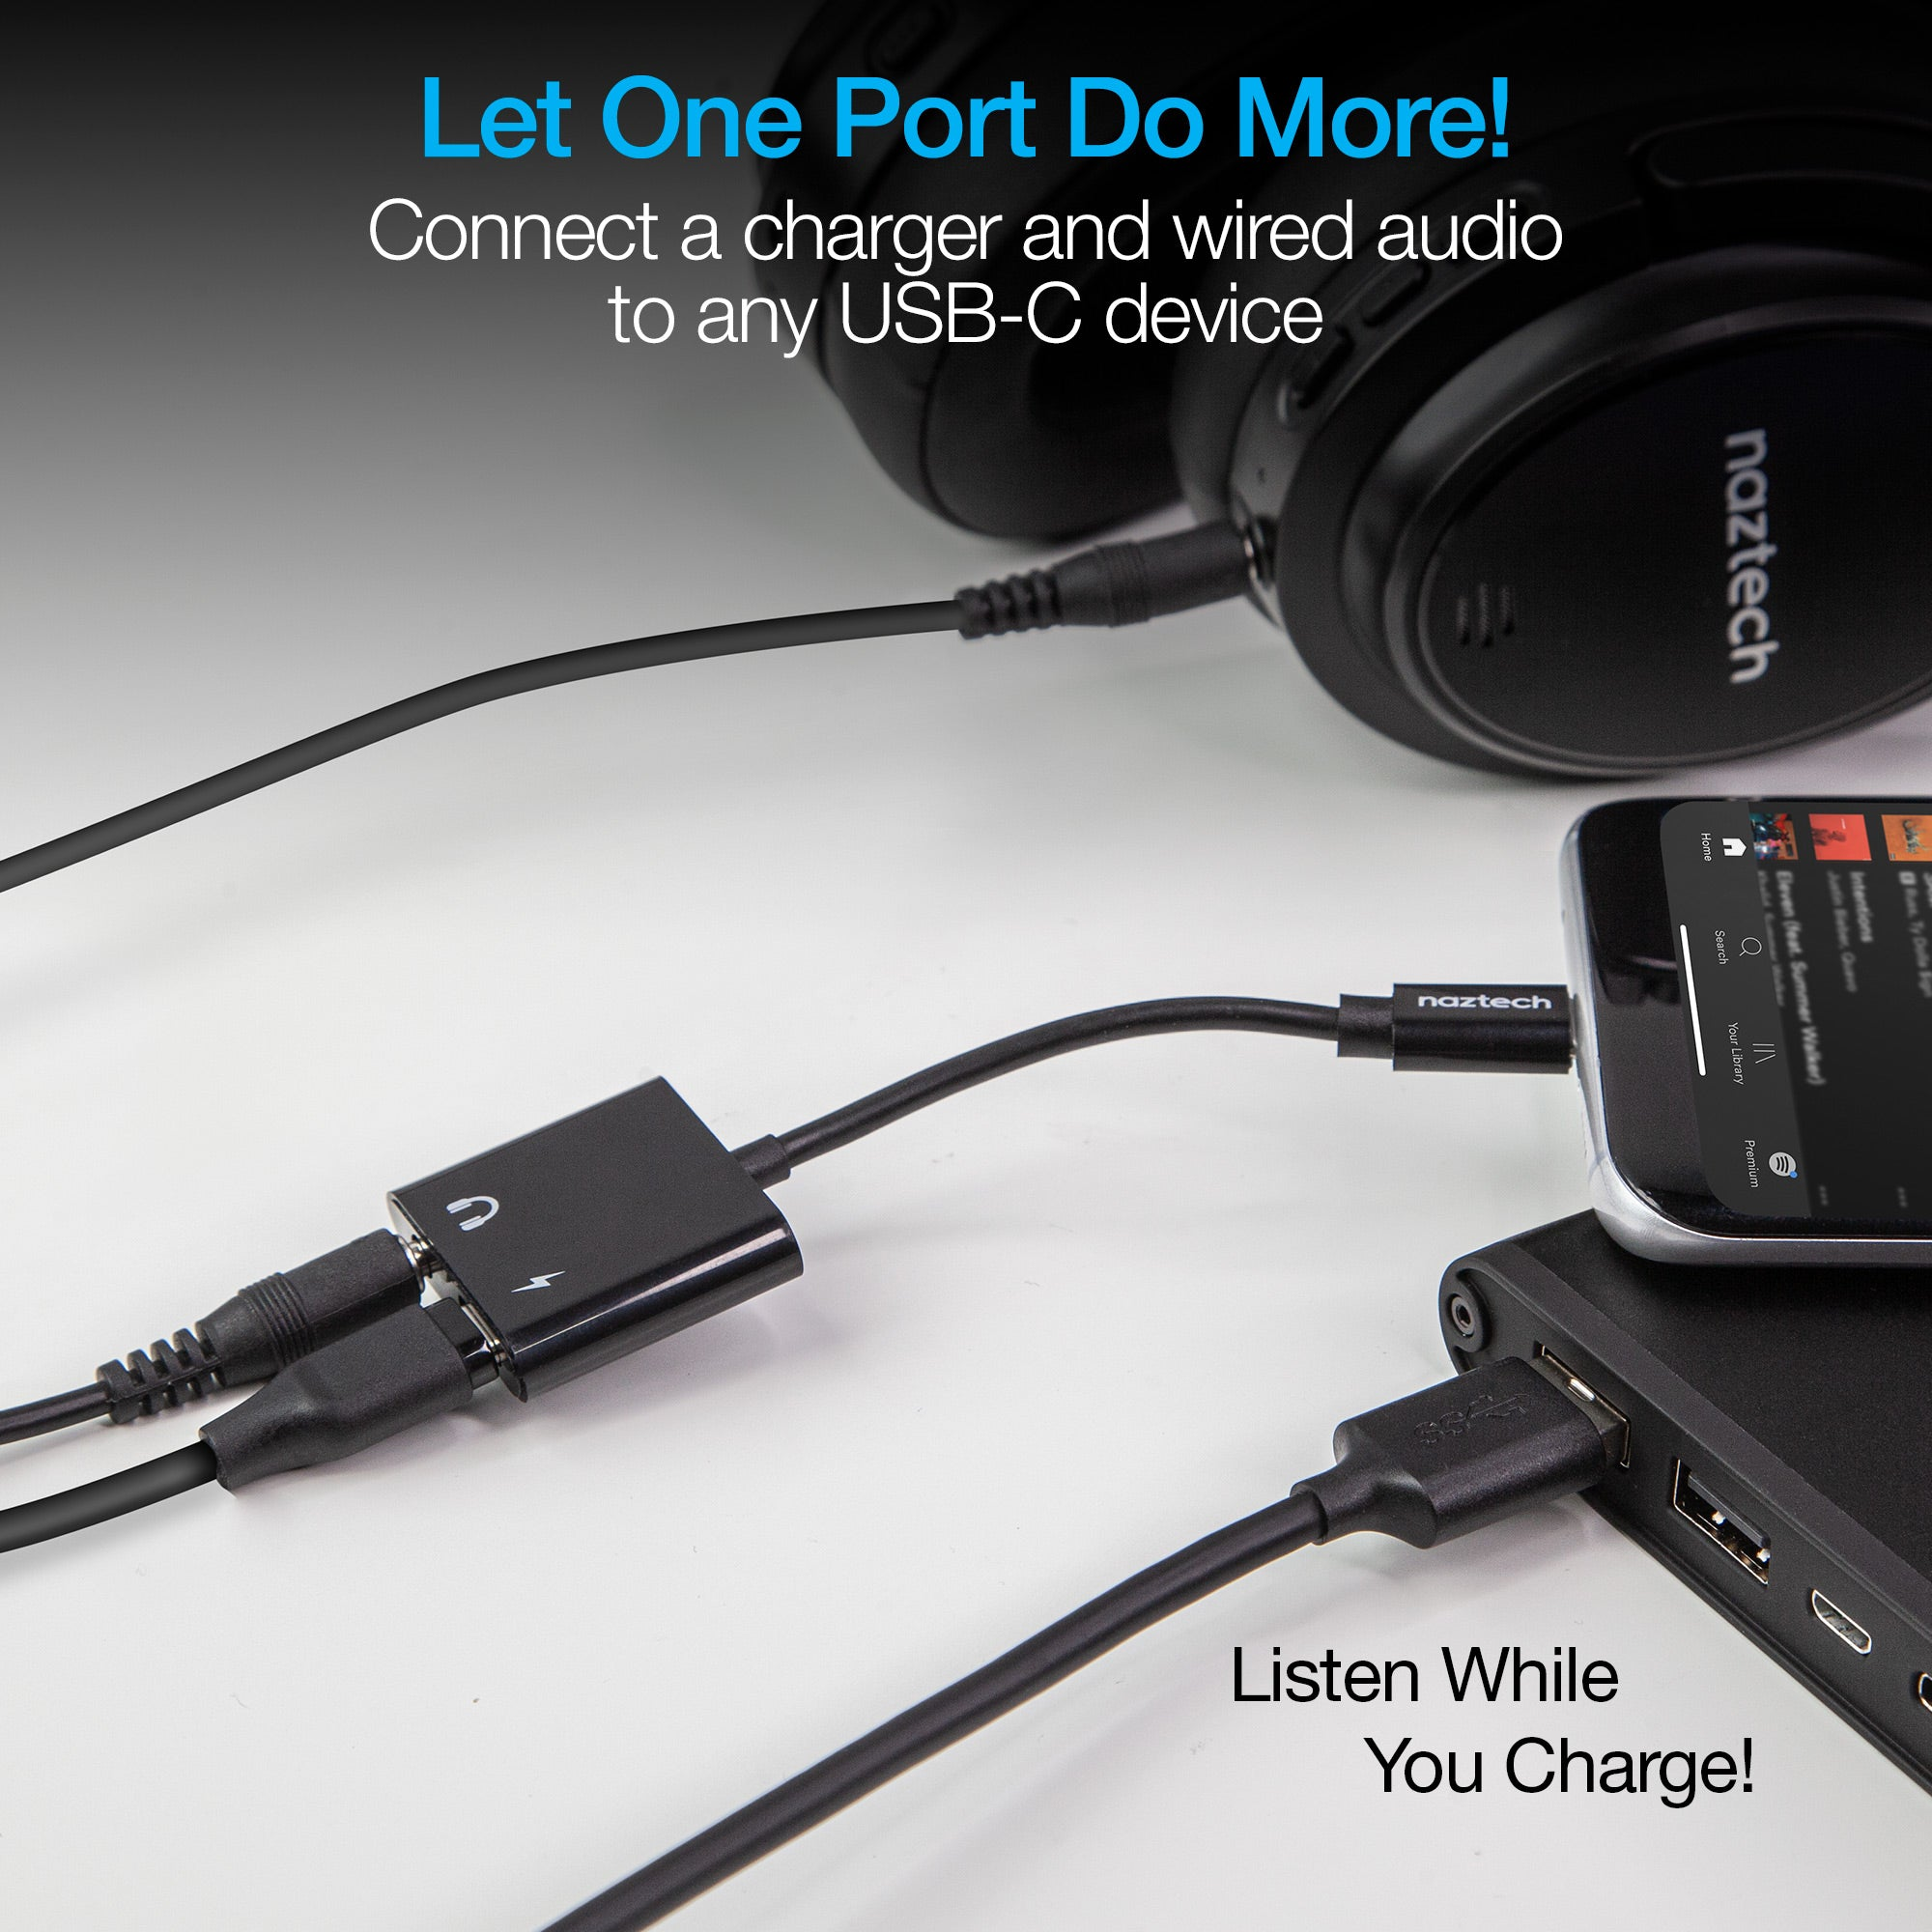 USB-C & 3.5mm Audio + Charge Adapter